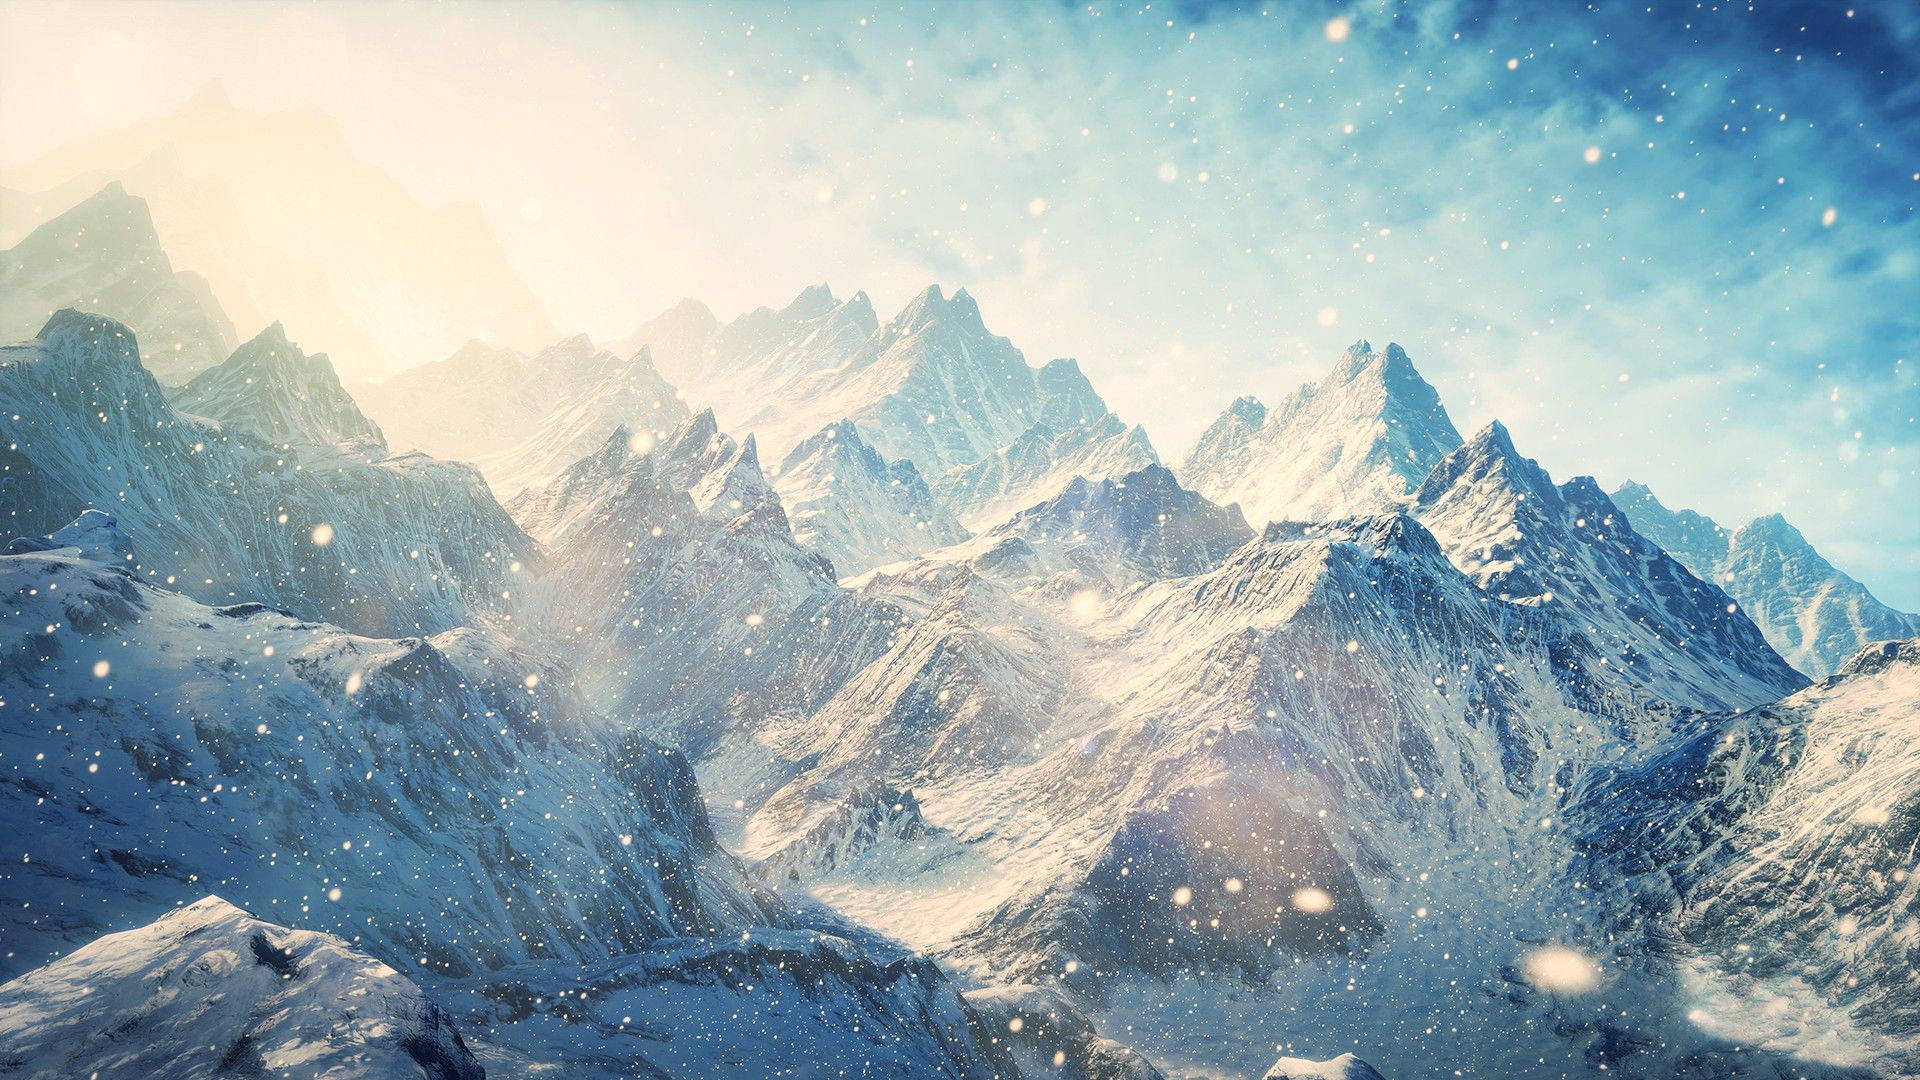 wallpaper of ice mountain